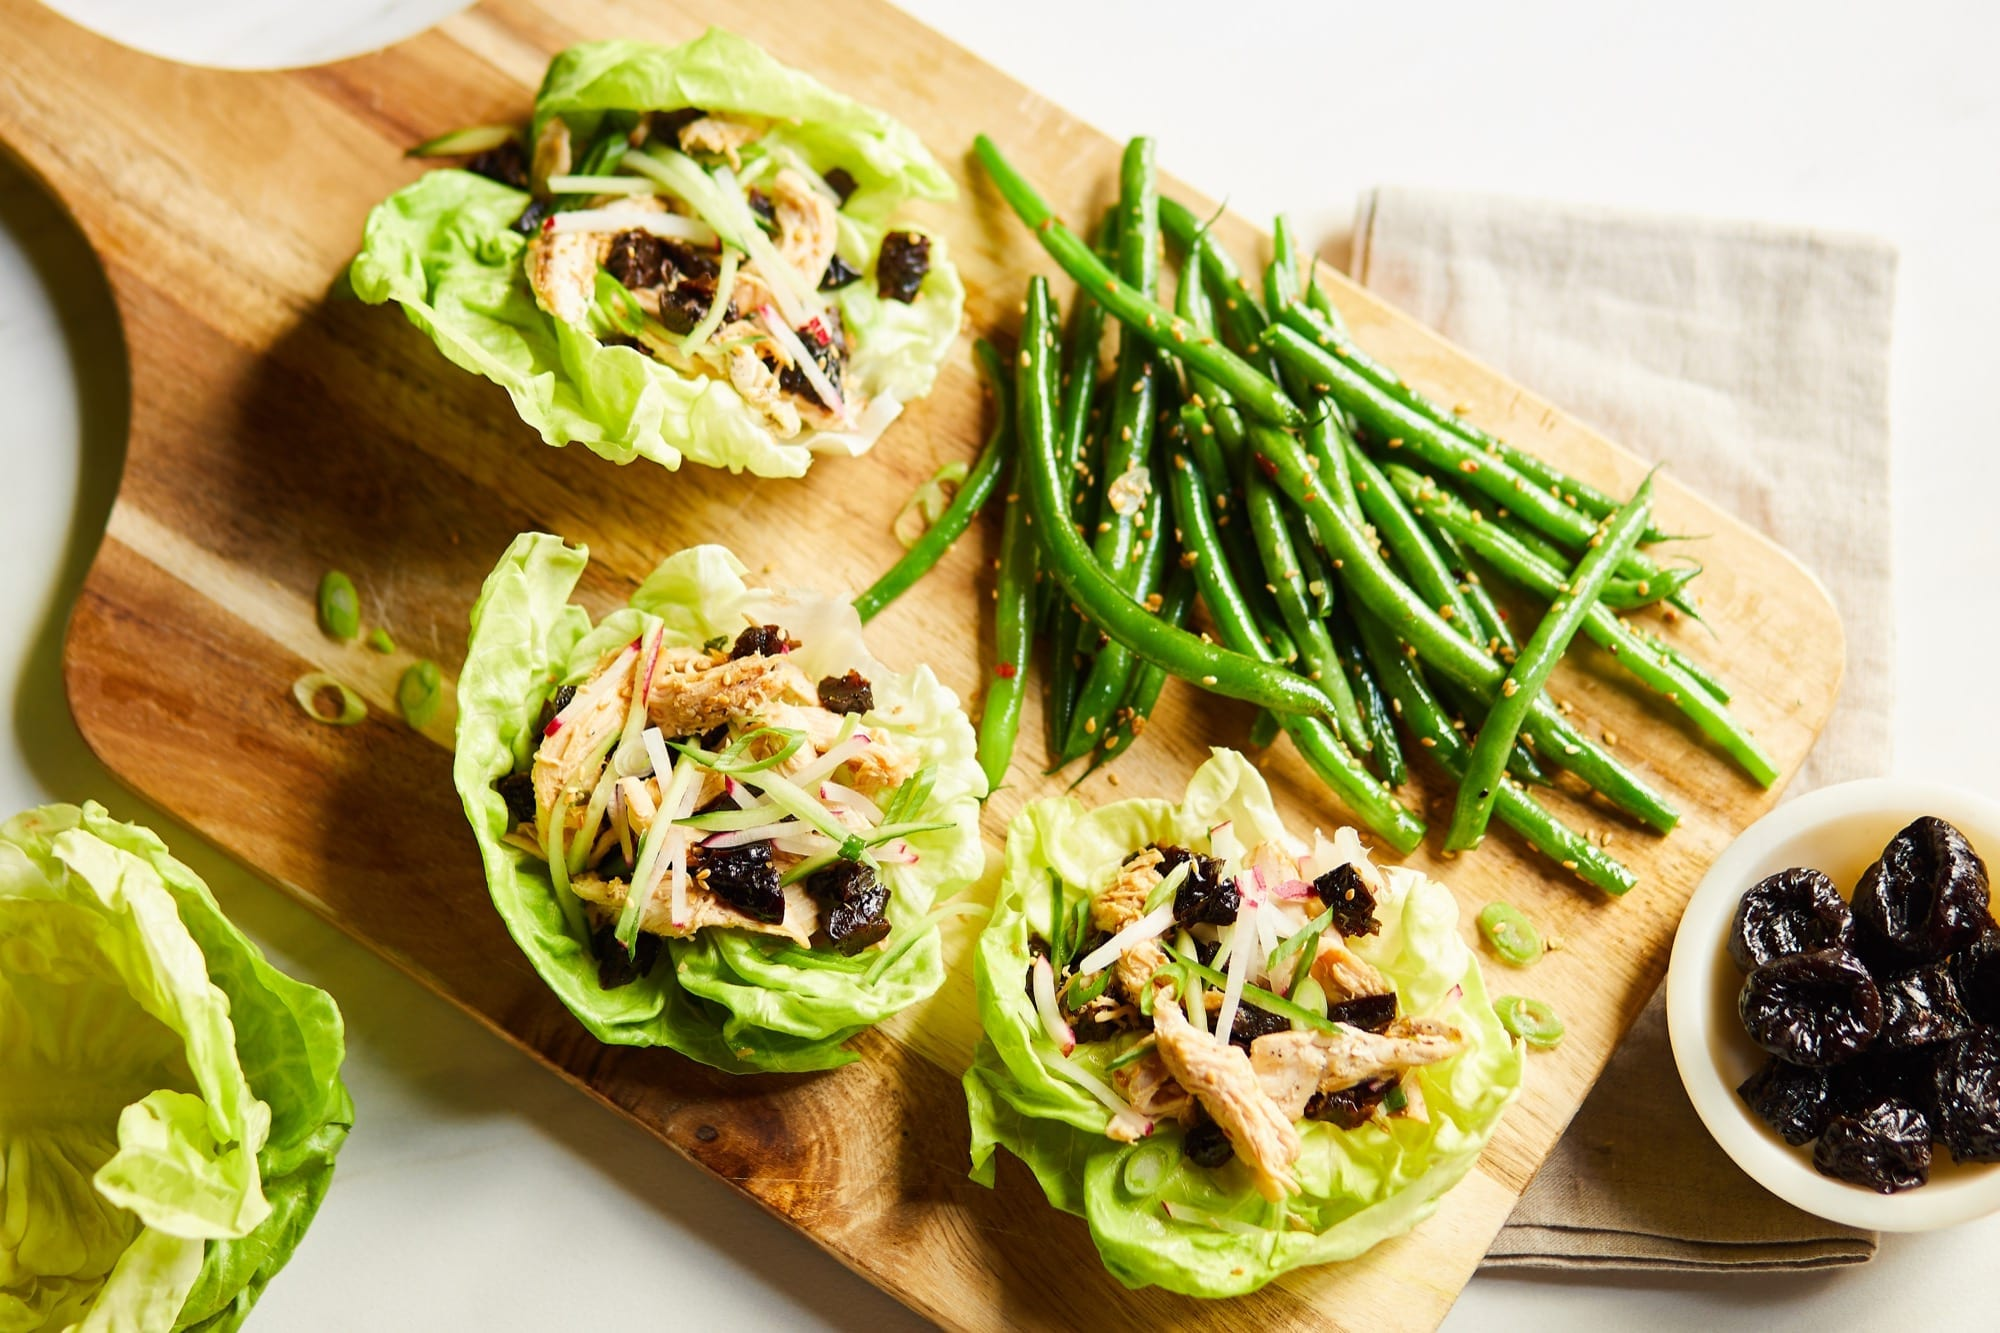 Asian Chicken and California Prunes Lettuce Wraps